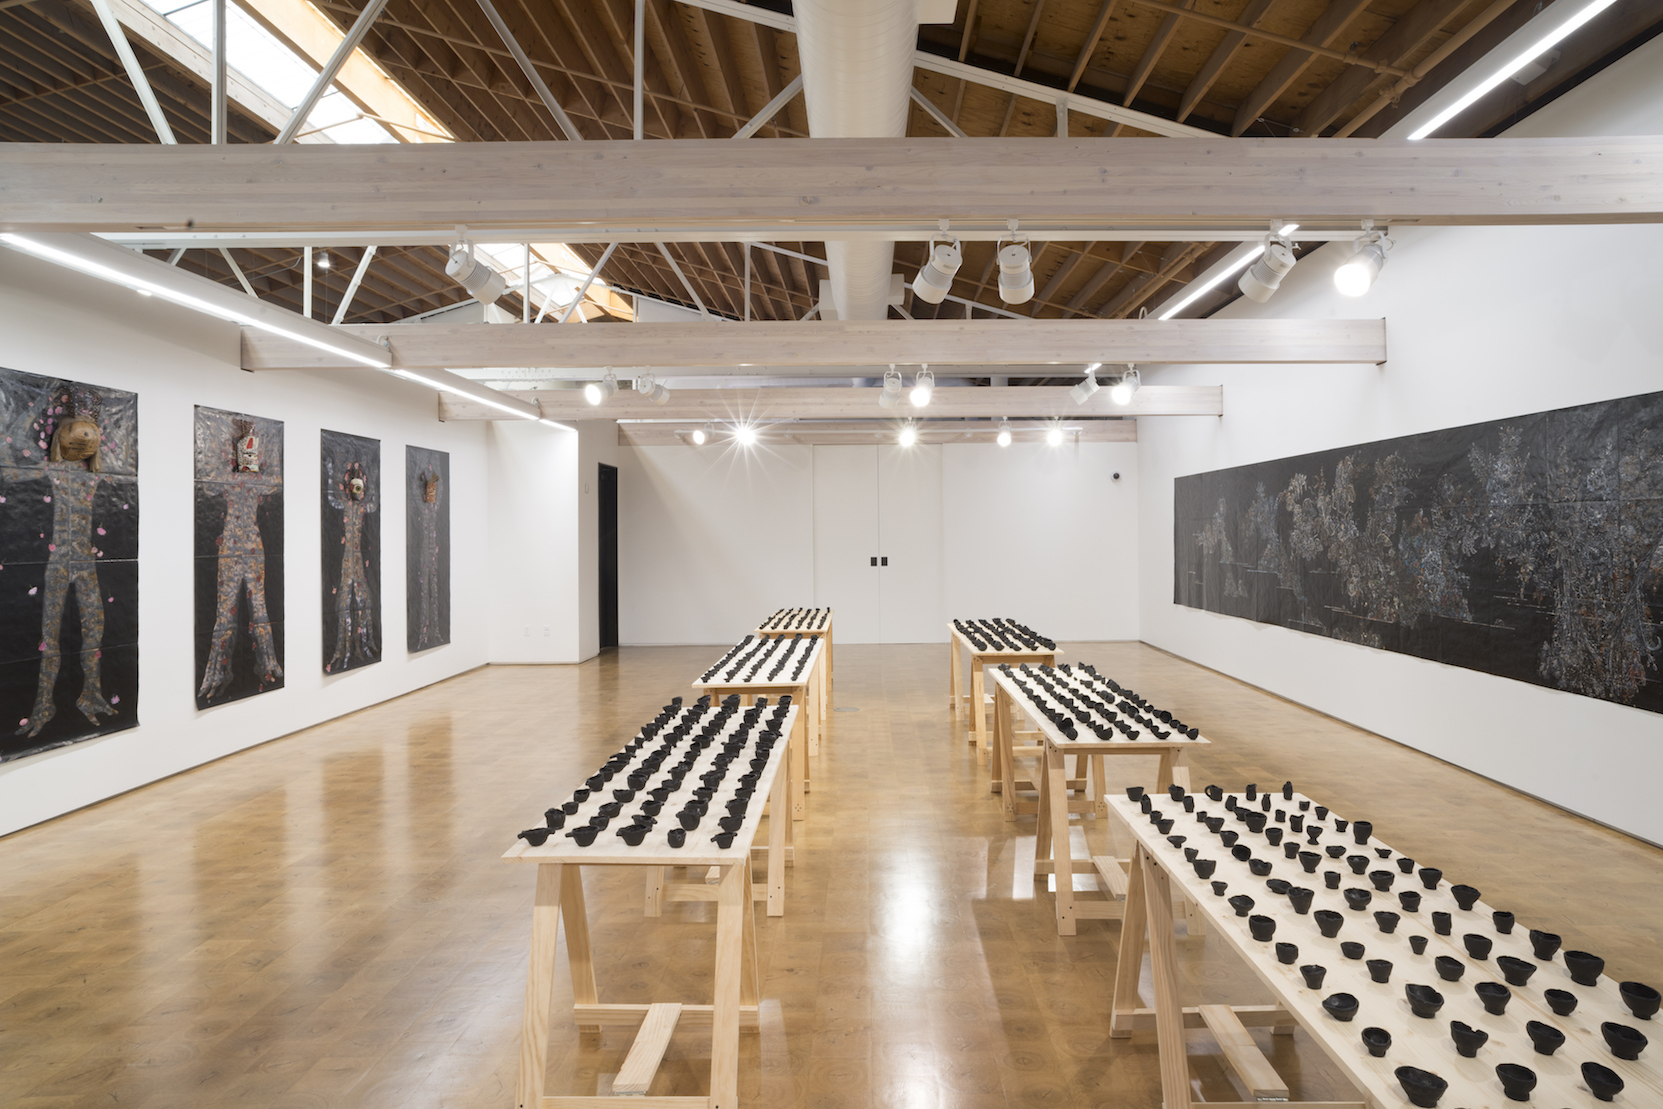 Chapter 5 Chapter 5: River, Installation view